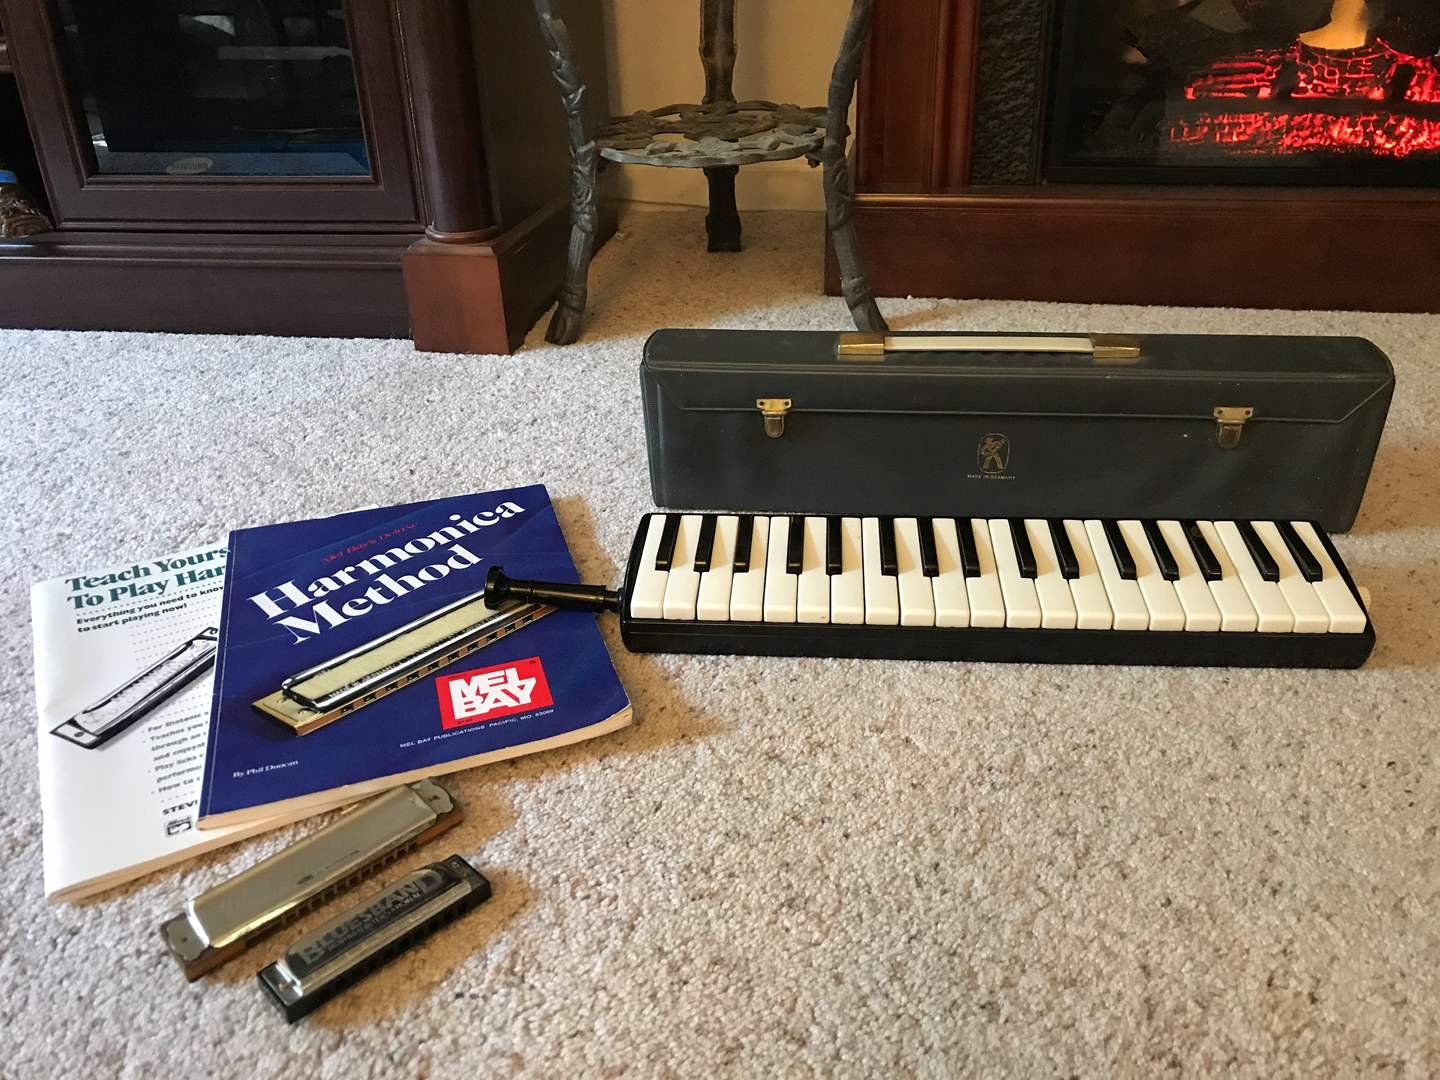 Lot # 22 - Made in Germany Hohner-Melondica Piano 36 w/Case & Two Harmonicas w/2 Books (main image)